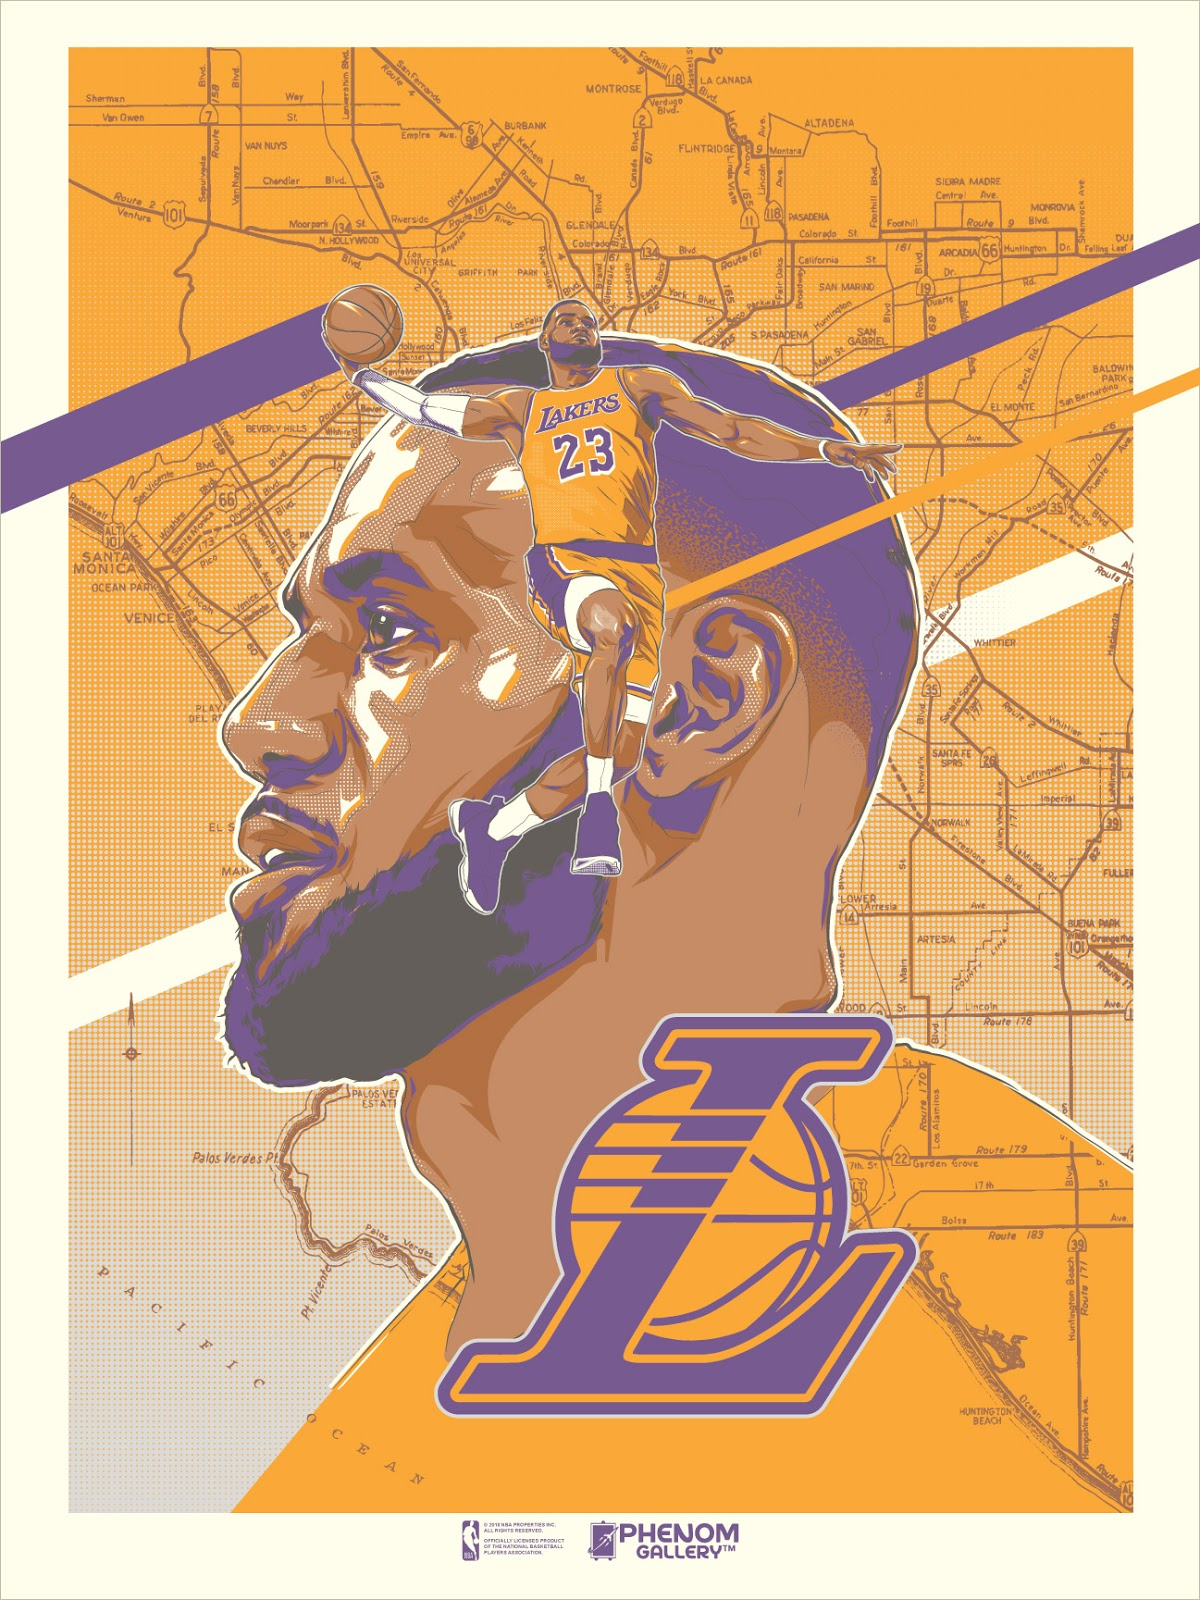 034d542a6f04 Los Angeles Lakers LeBron James Screen Print by Rob Zilla x Phenom Gallery